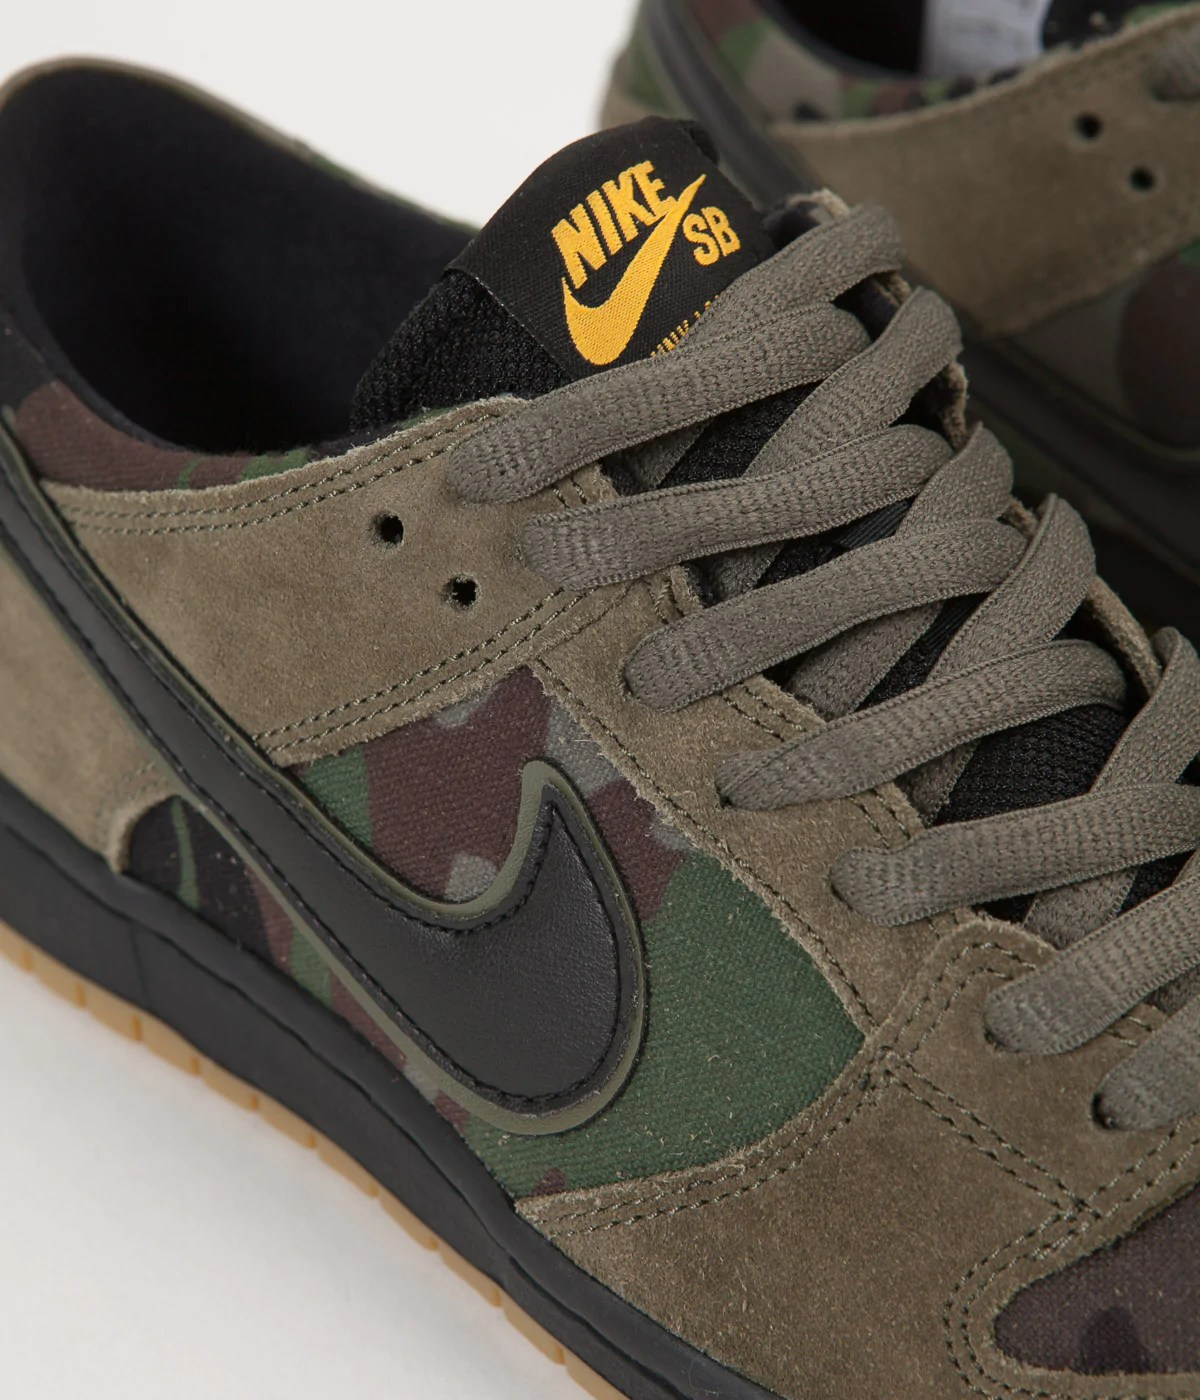 67e8285594d 20+ Nike Pg Olive Black Pictures and Ideas on Meta Networks